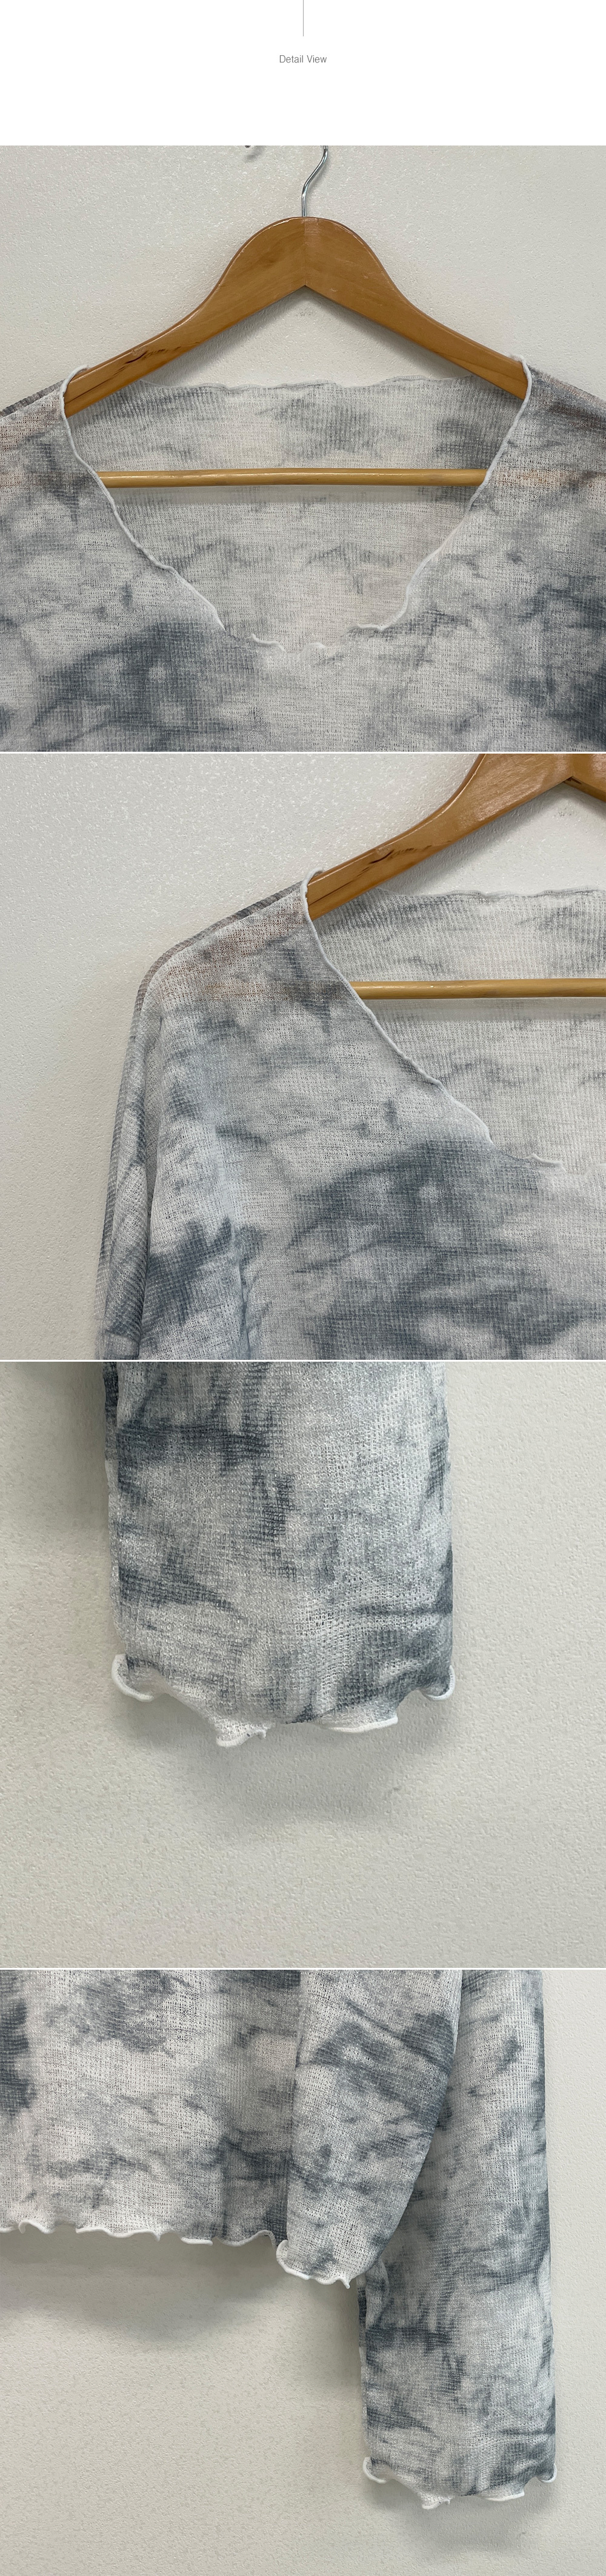 Neo, tie-dye printing see-through soft fit wave neck T-shirt